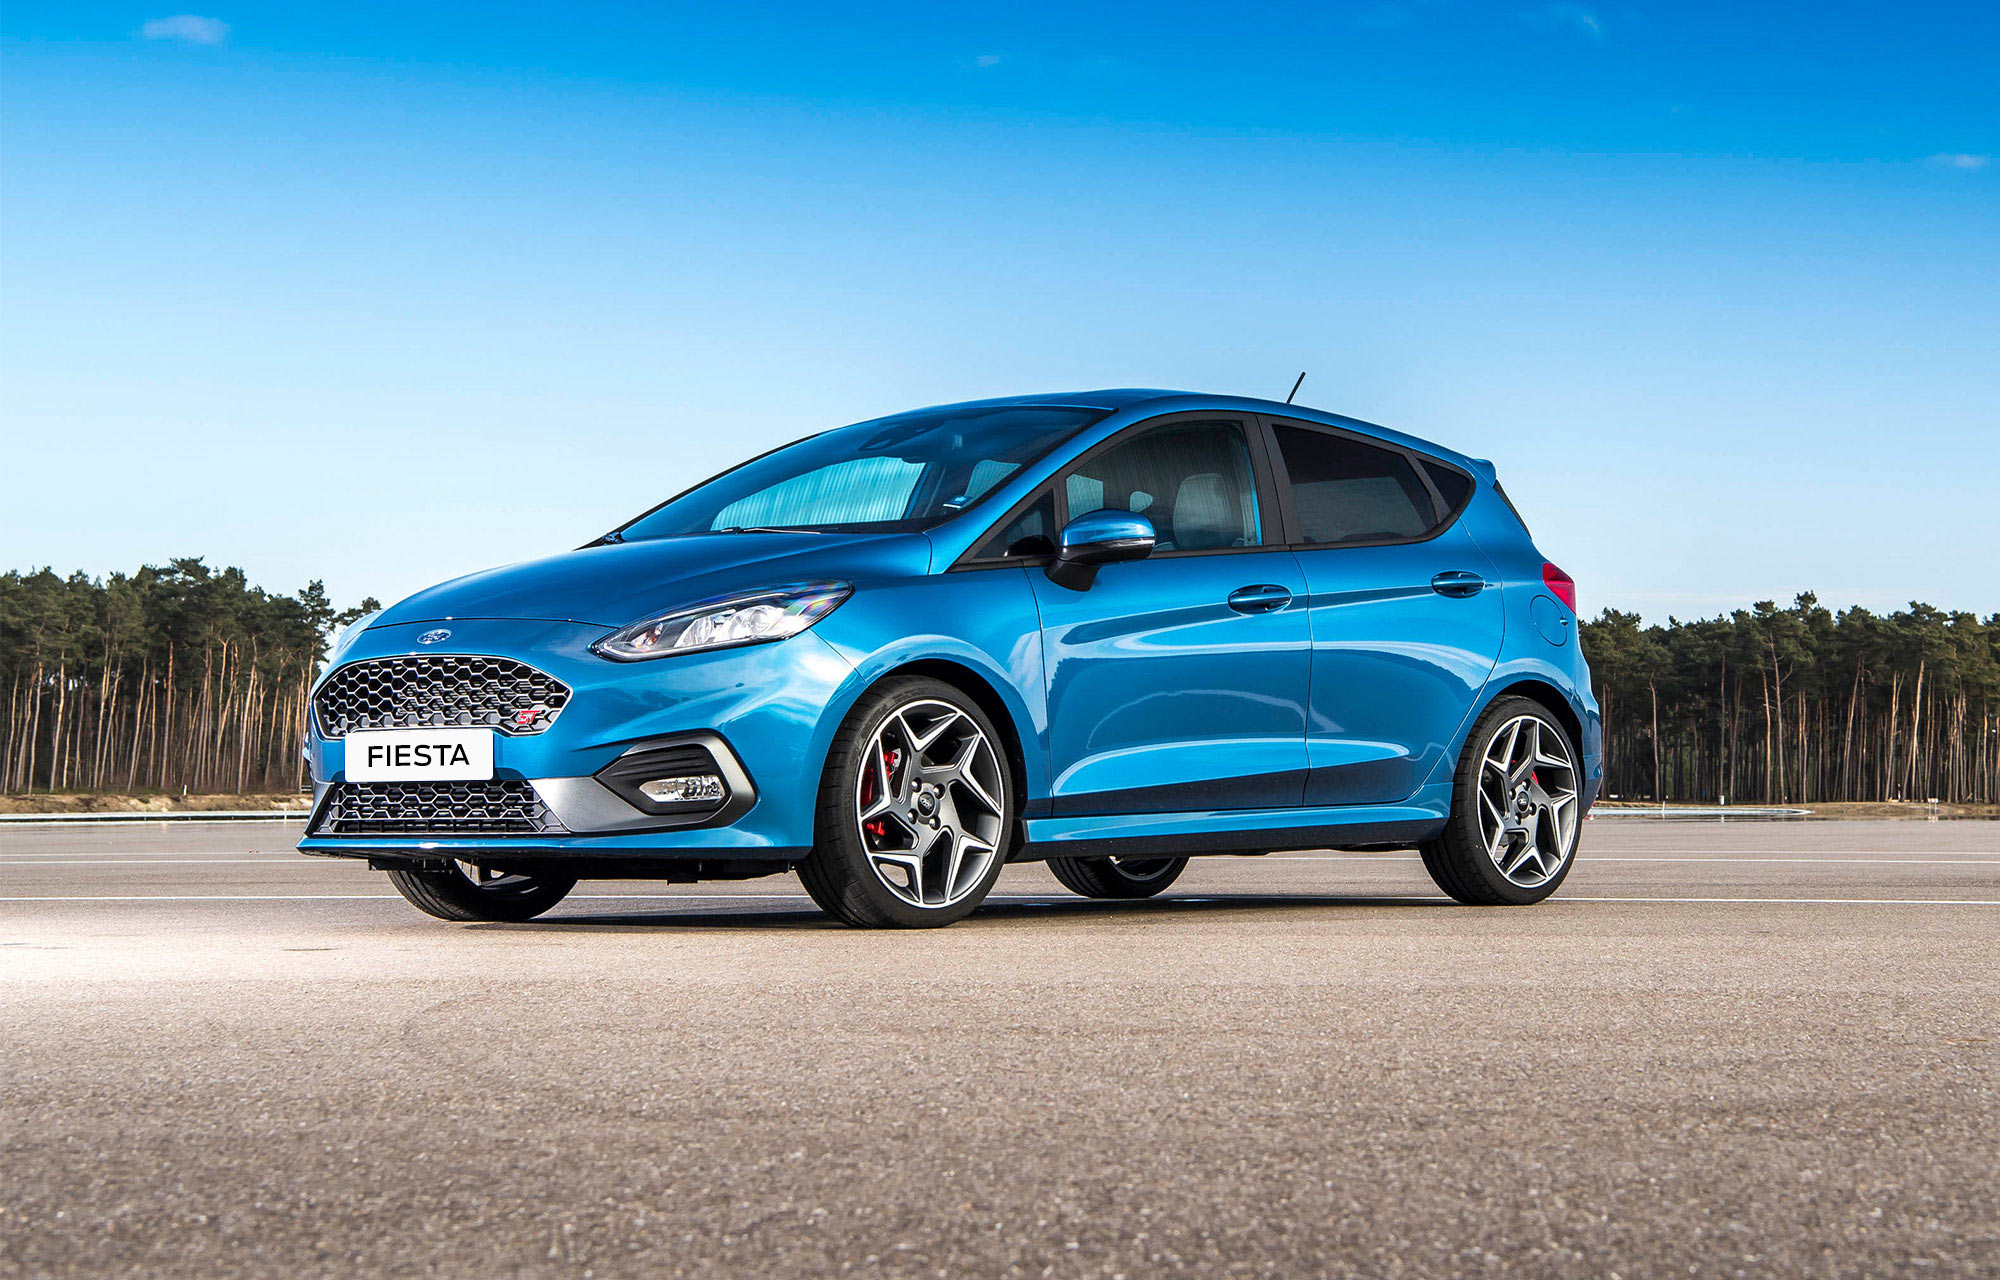 67 The Best 2019 Fiesta St Reviews